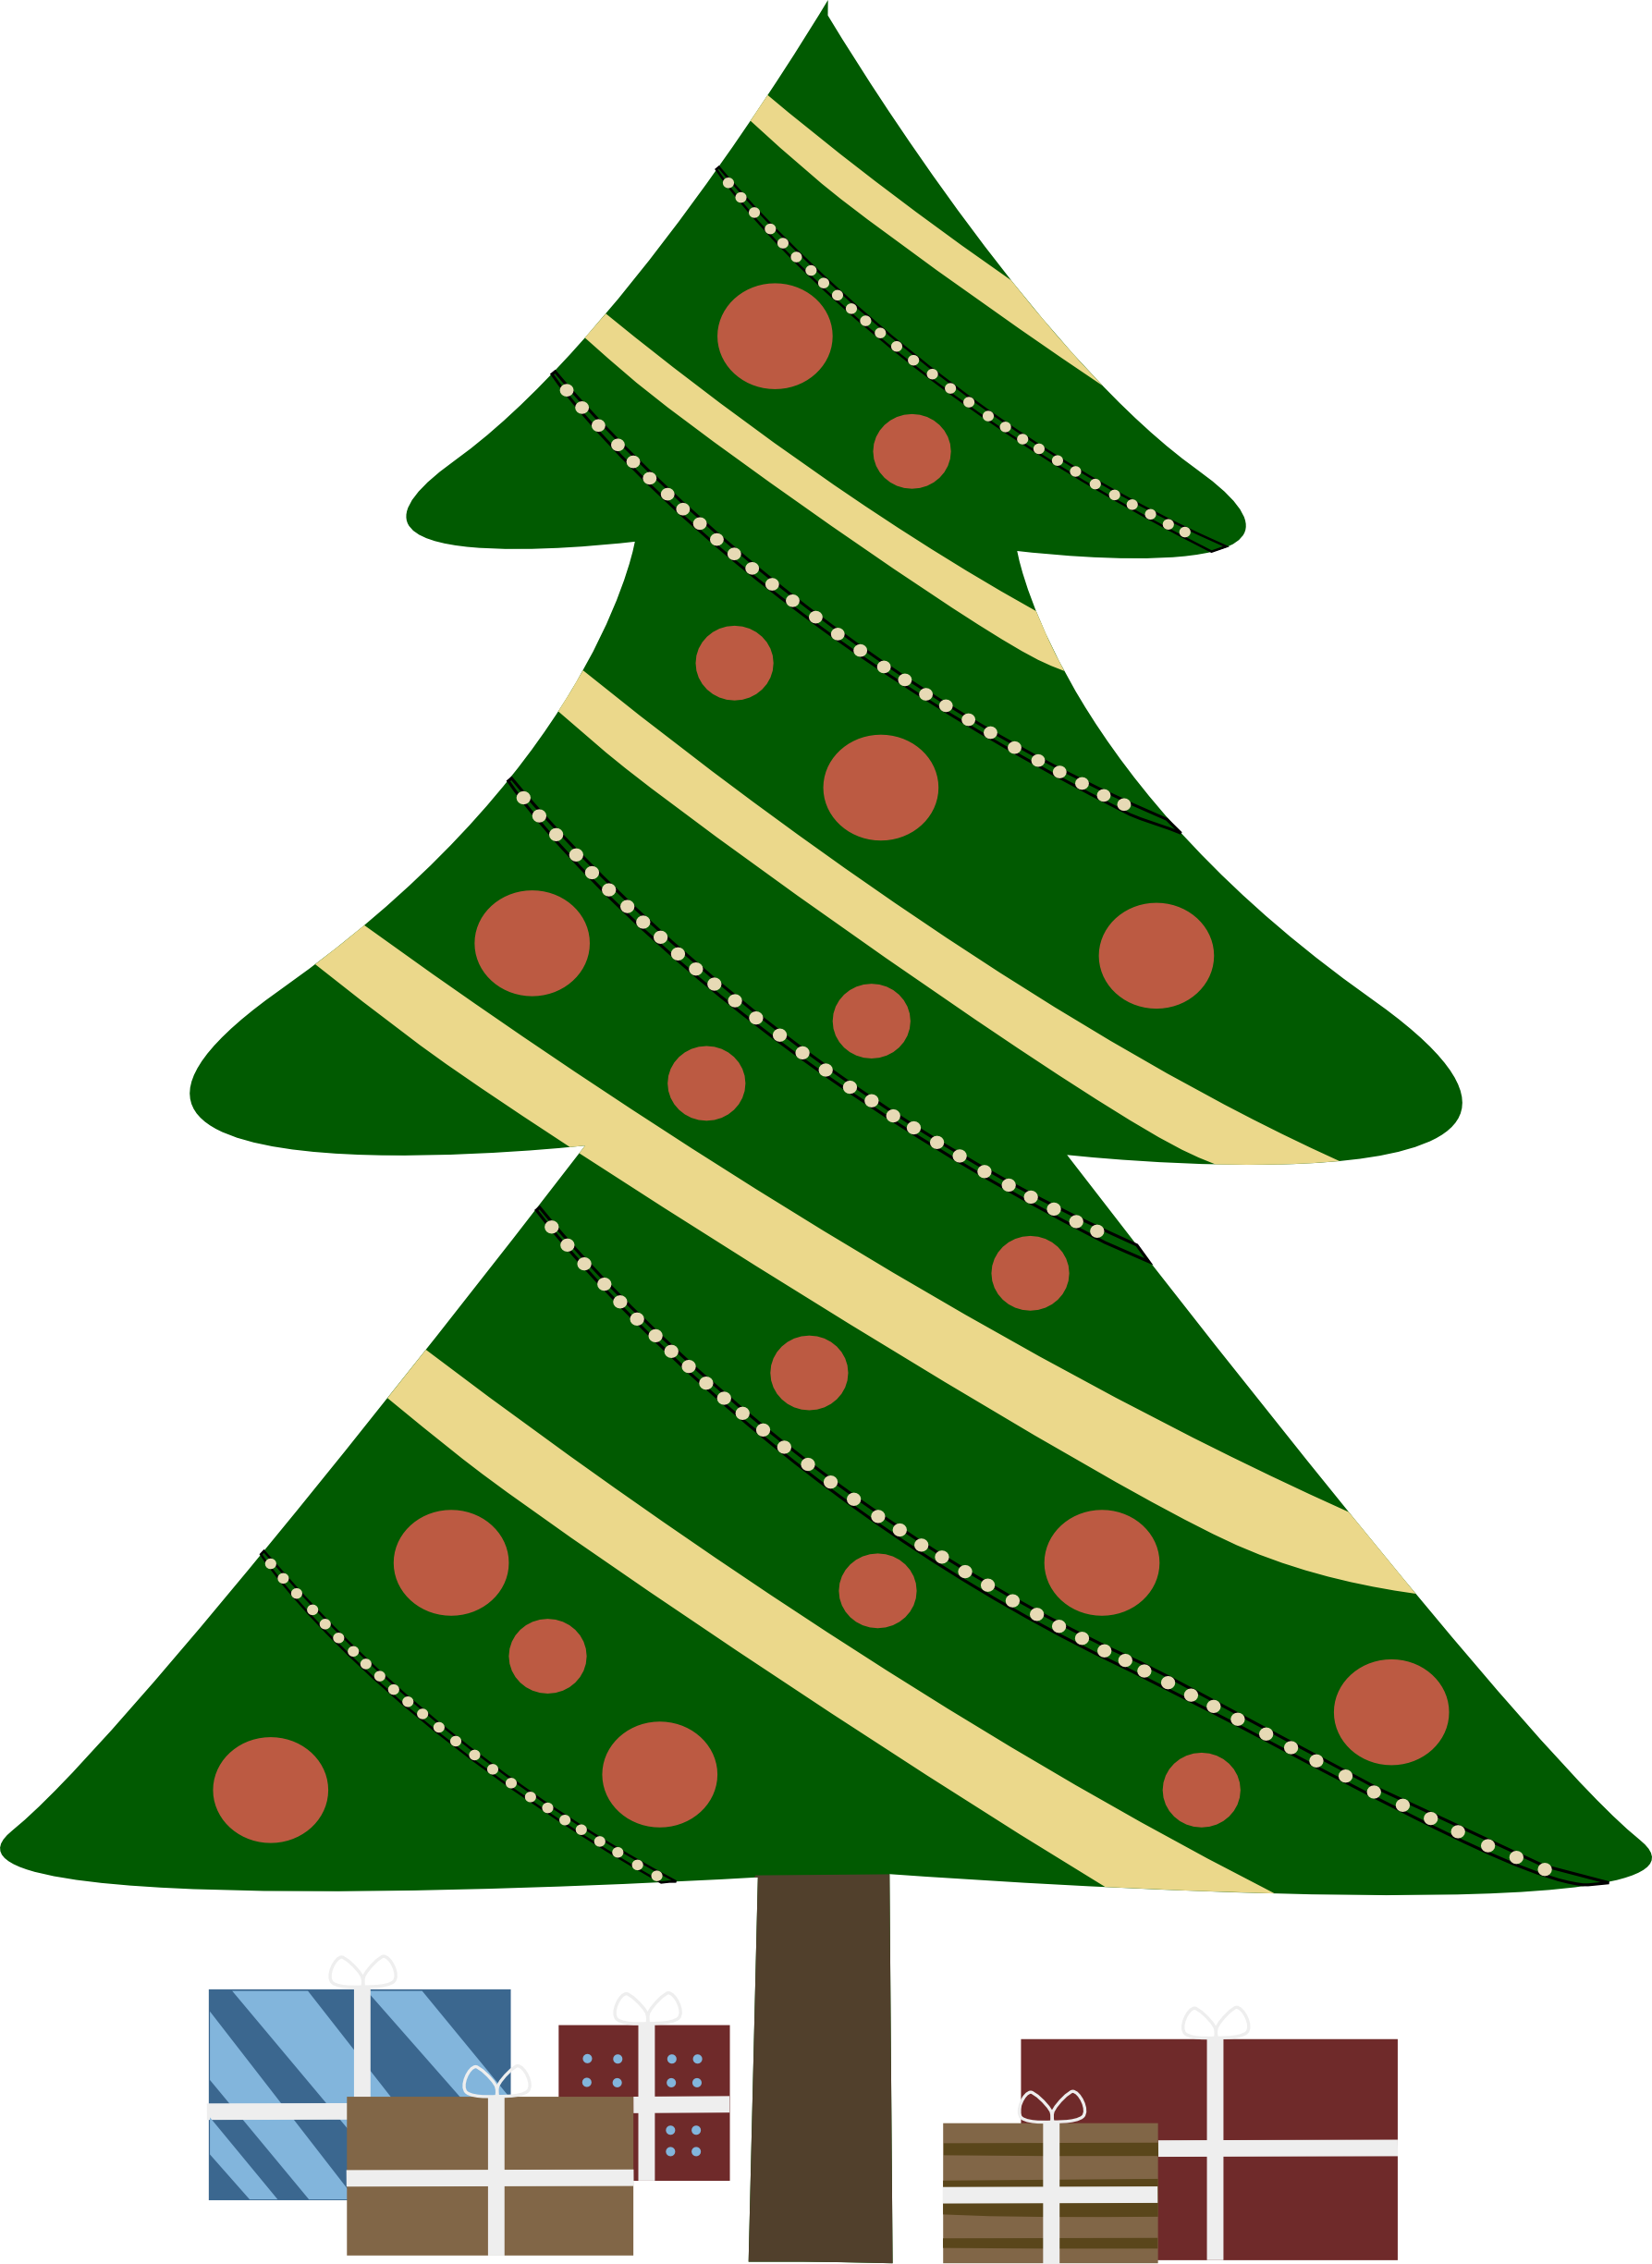 Angel tree free clipart vector royalty free Free Christmas Tree With Presents Clipart, Download Free Clip Art ... vector royalty free